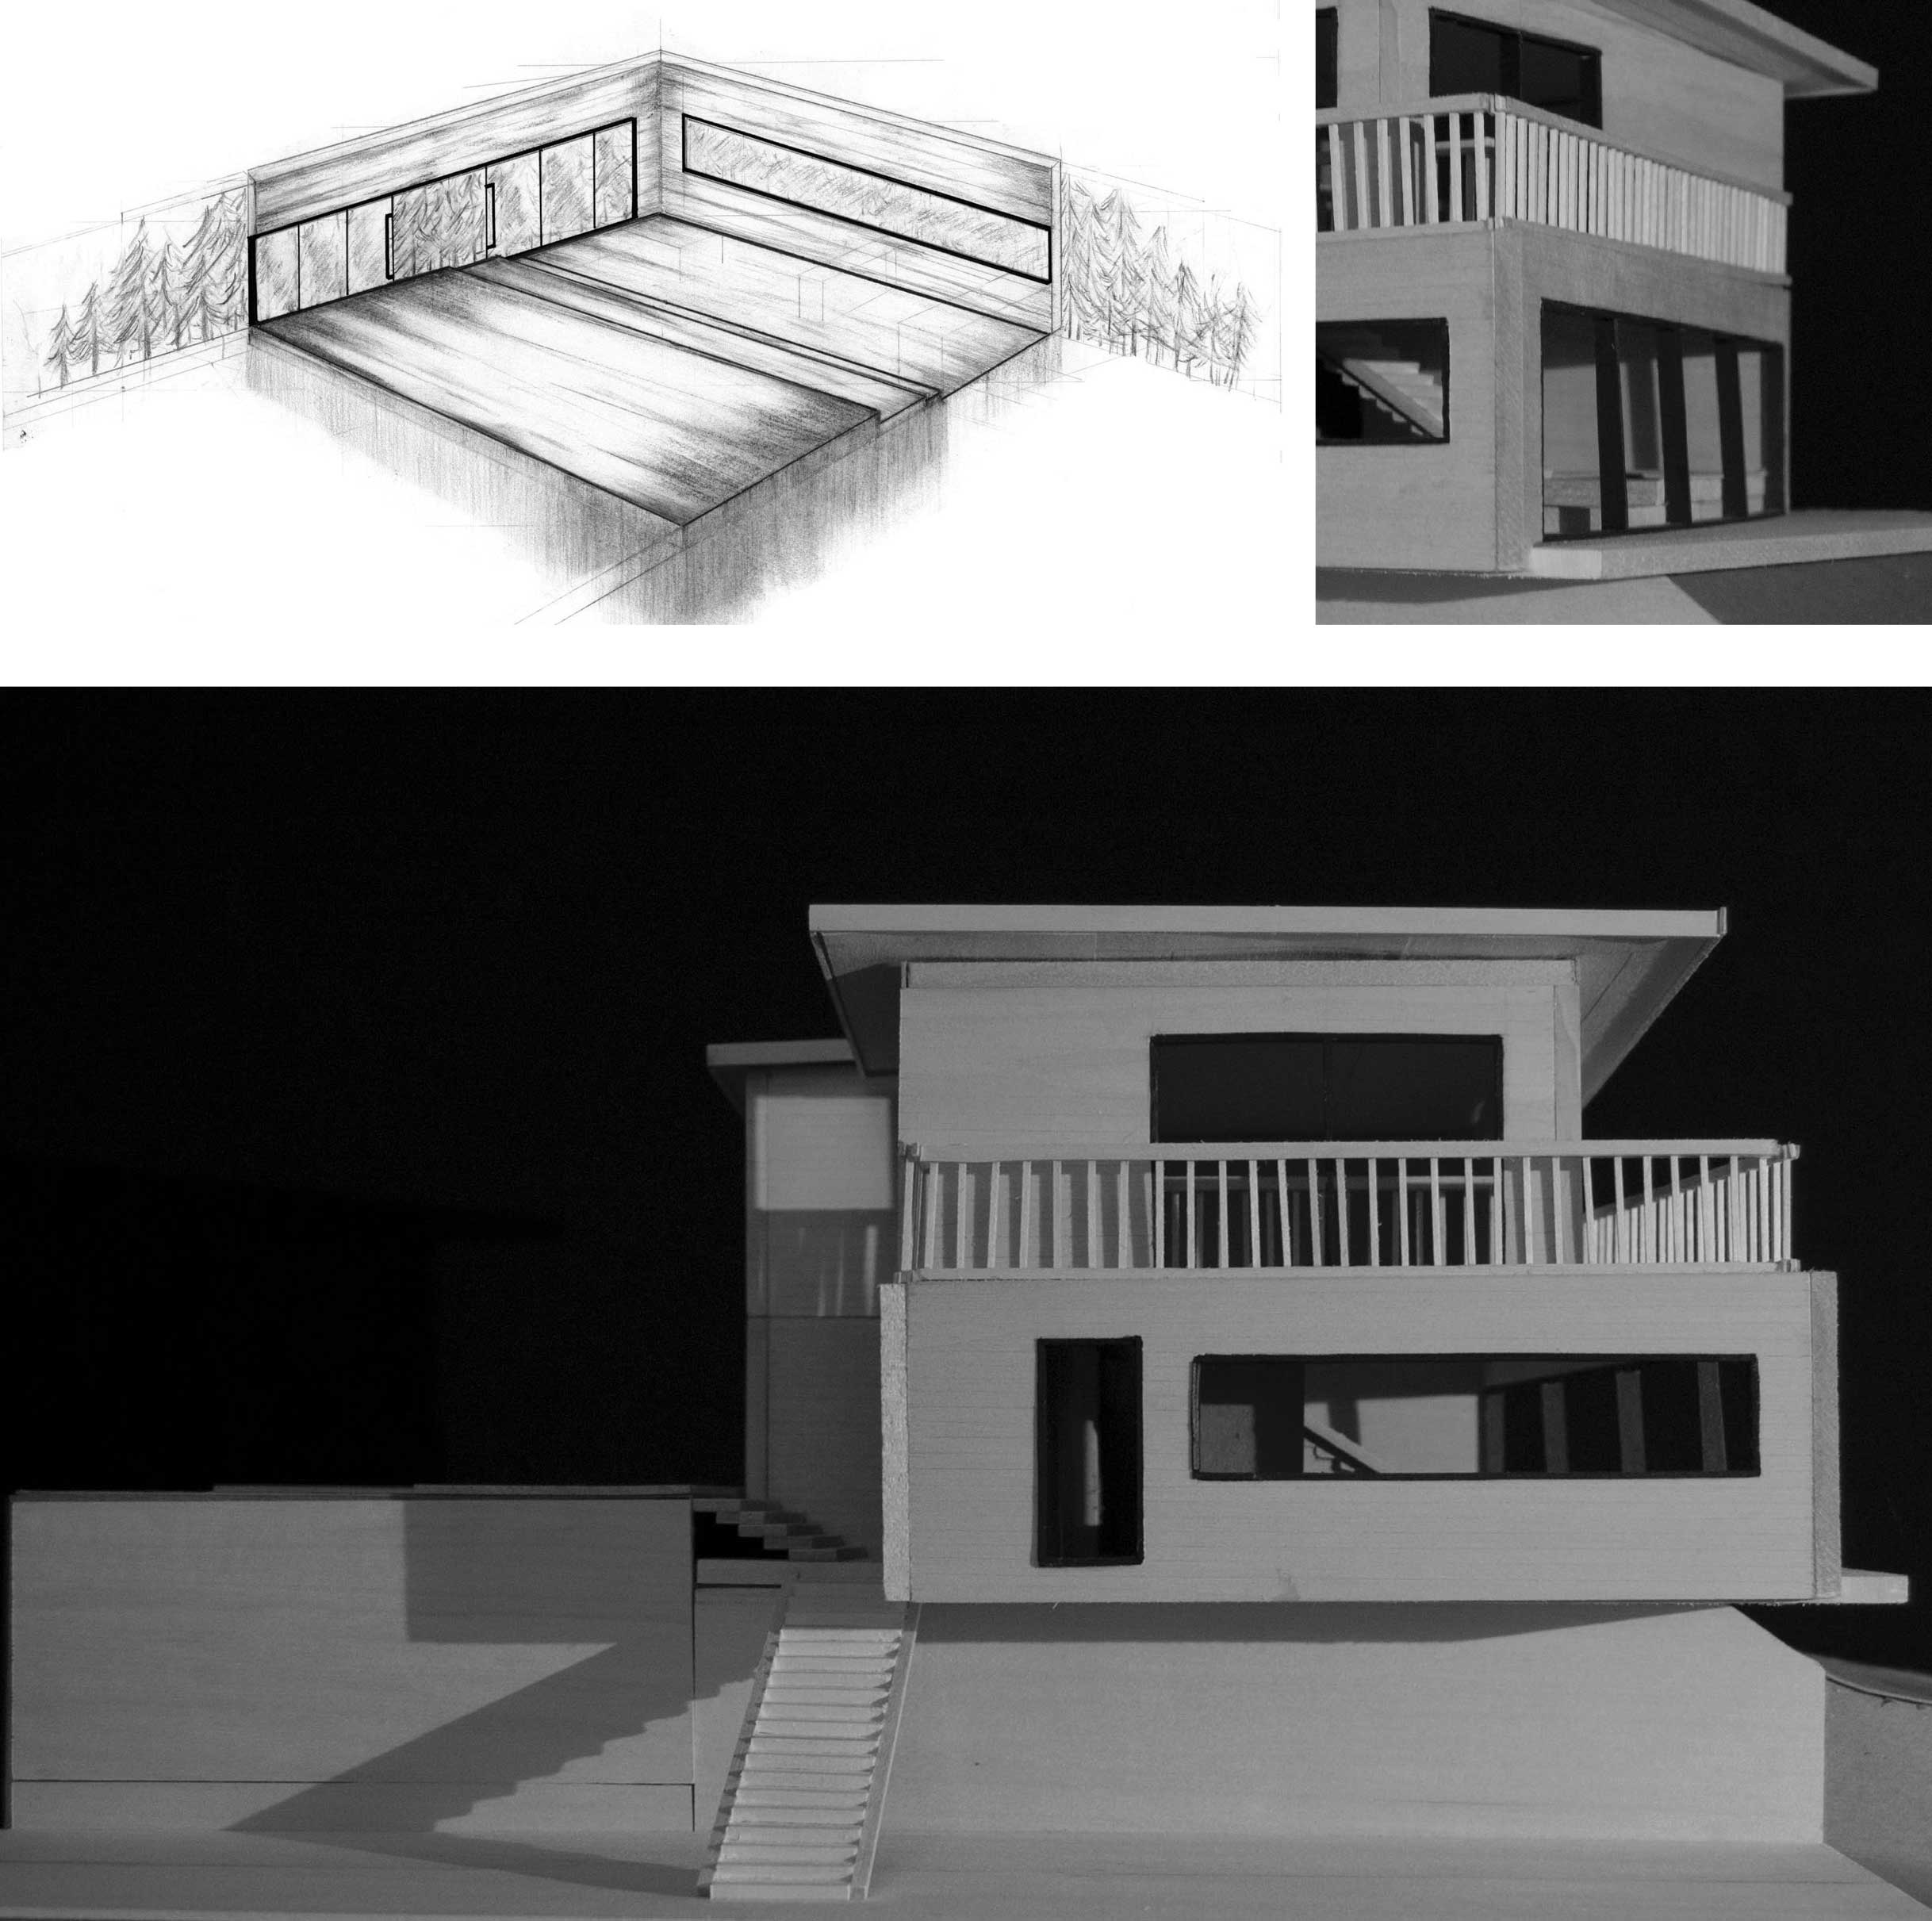 Heather Gillich: perspective, graphite on bristol board and final model of private residence design